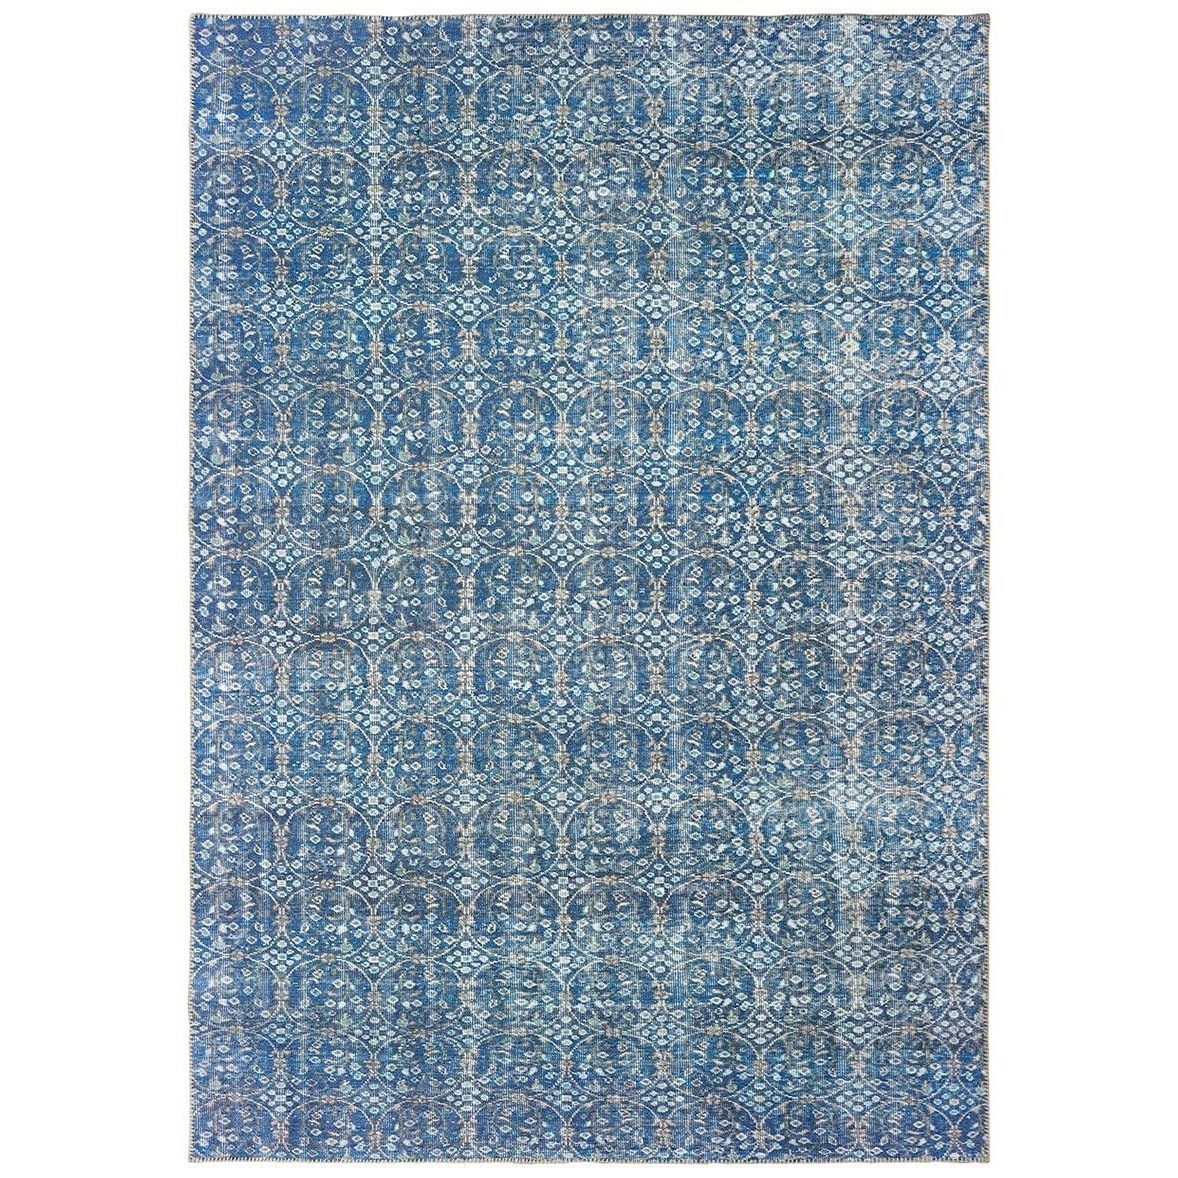 Sofia 5' 3 X 7' 6 Rug by Oriental Weavers at HomeWorld Furniture